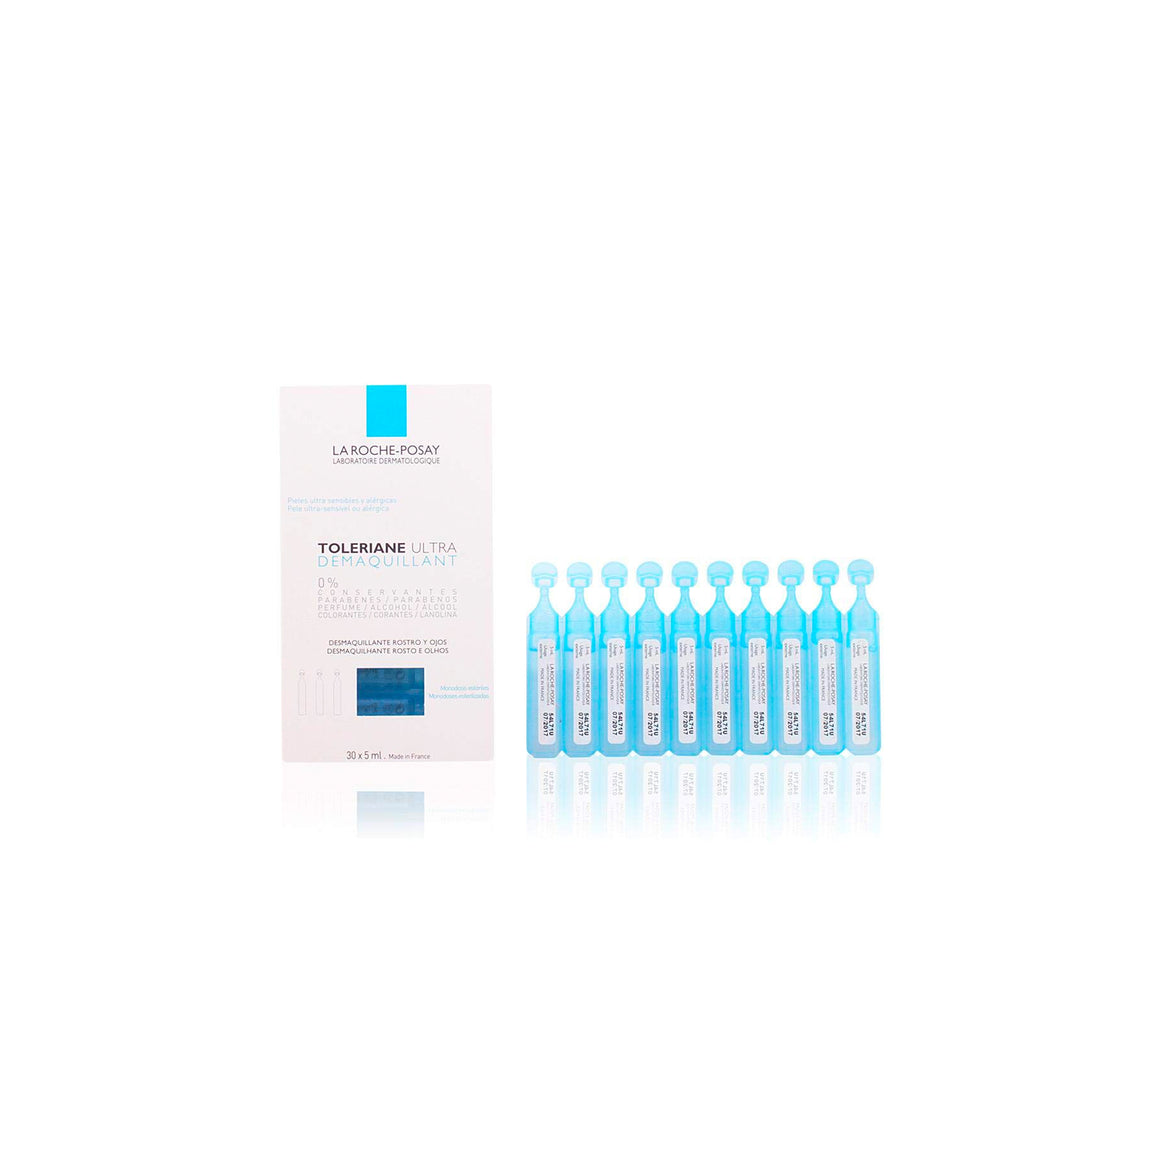 TOLERIANE ULTRA MAKEUP REMOVER FOR SENSITIVE SKIN